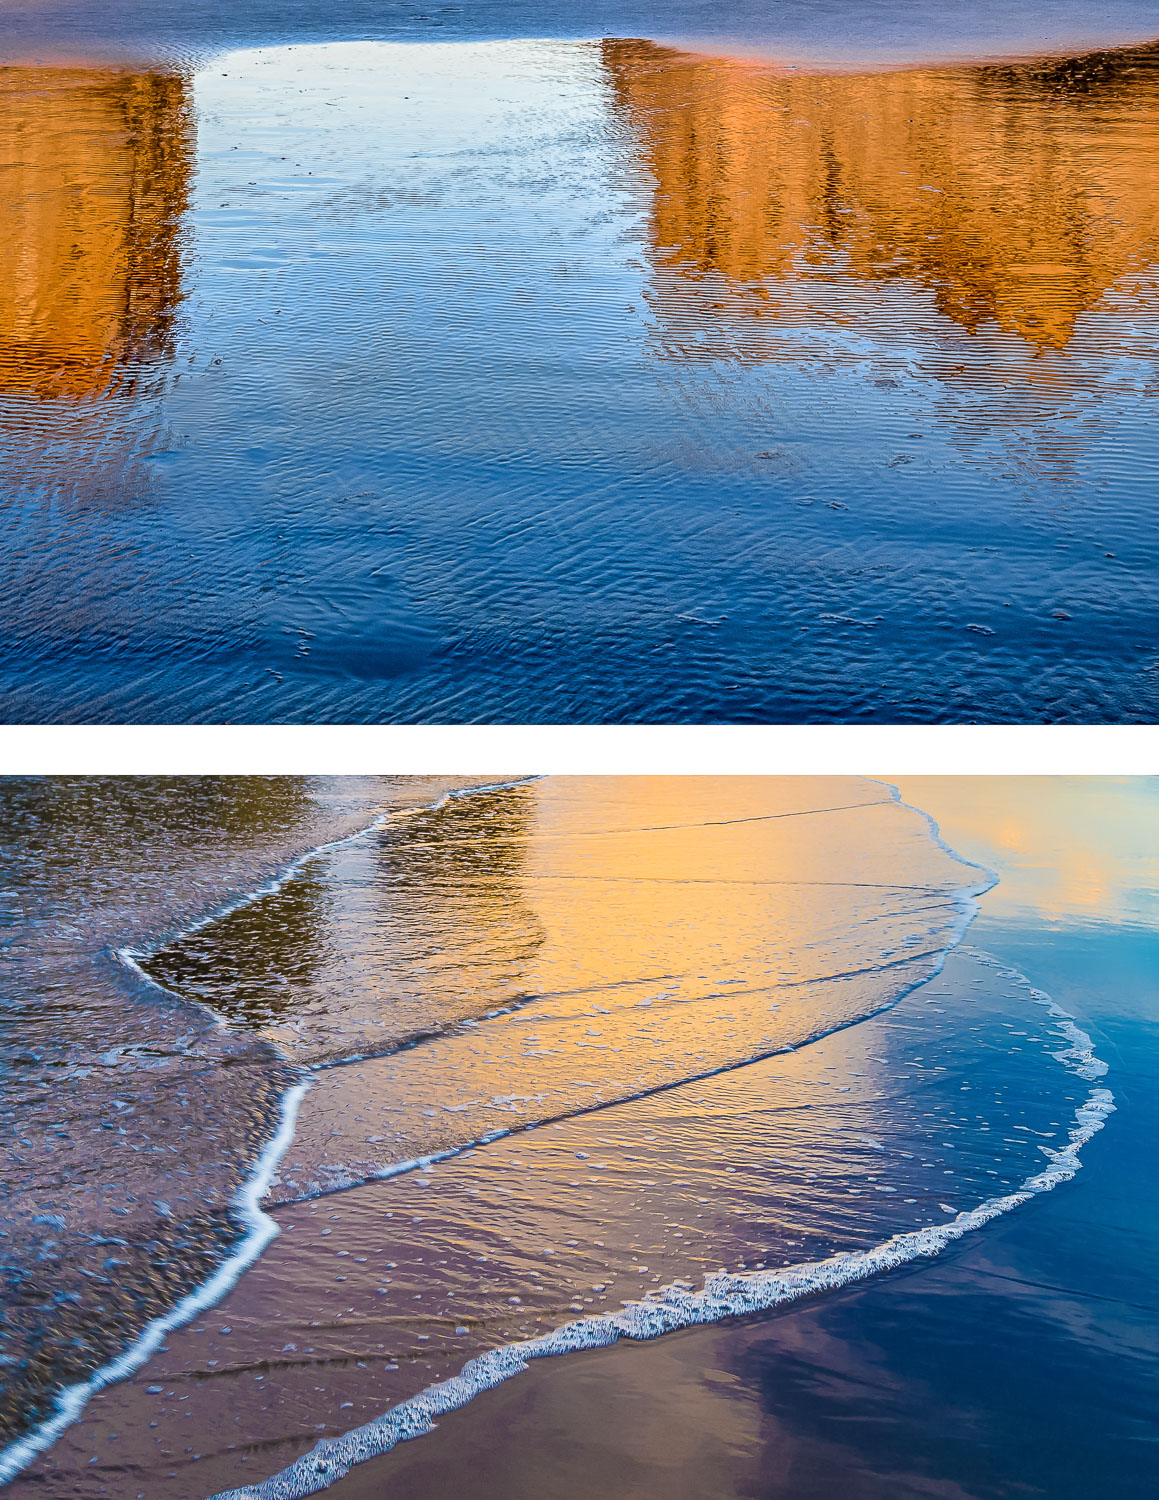 Image: Reflections on the wet sand make great watercolors. © Rick Ohnsman